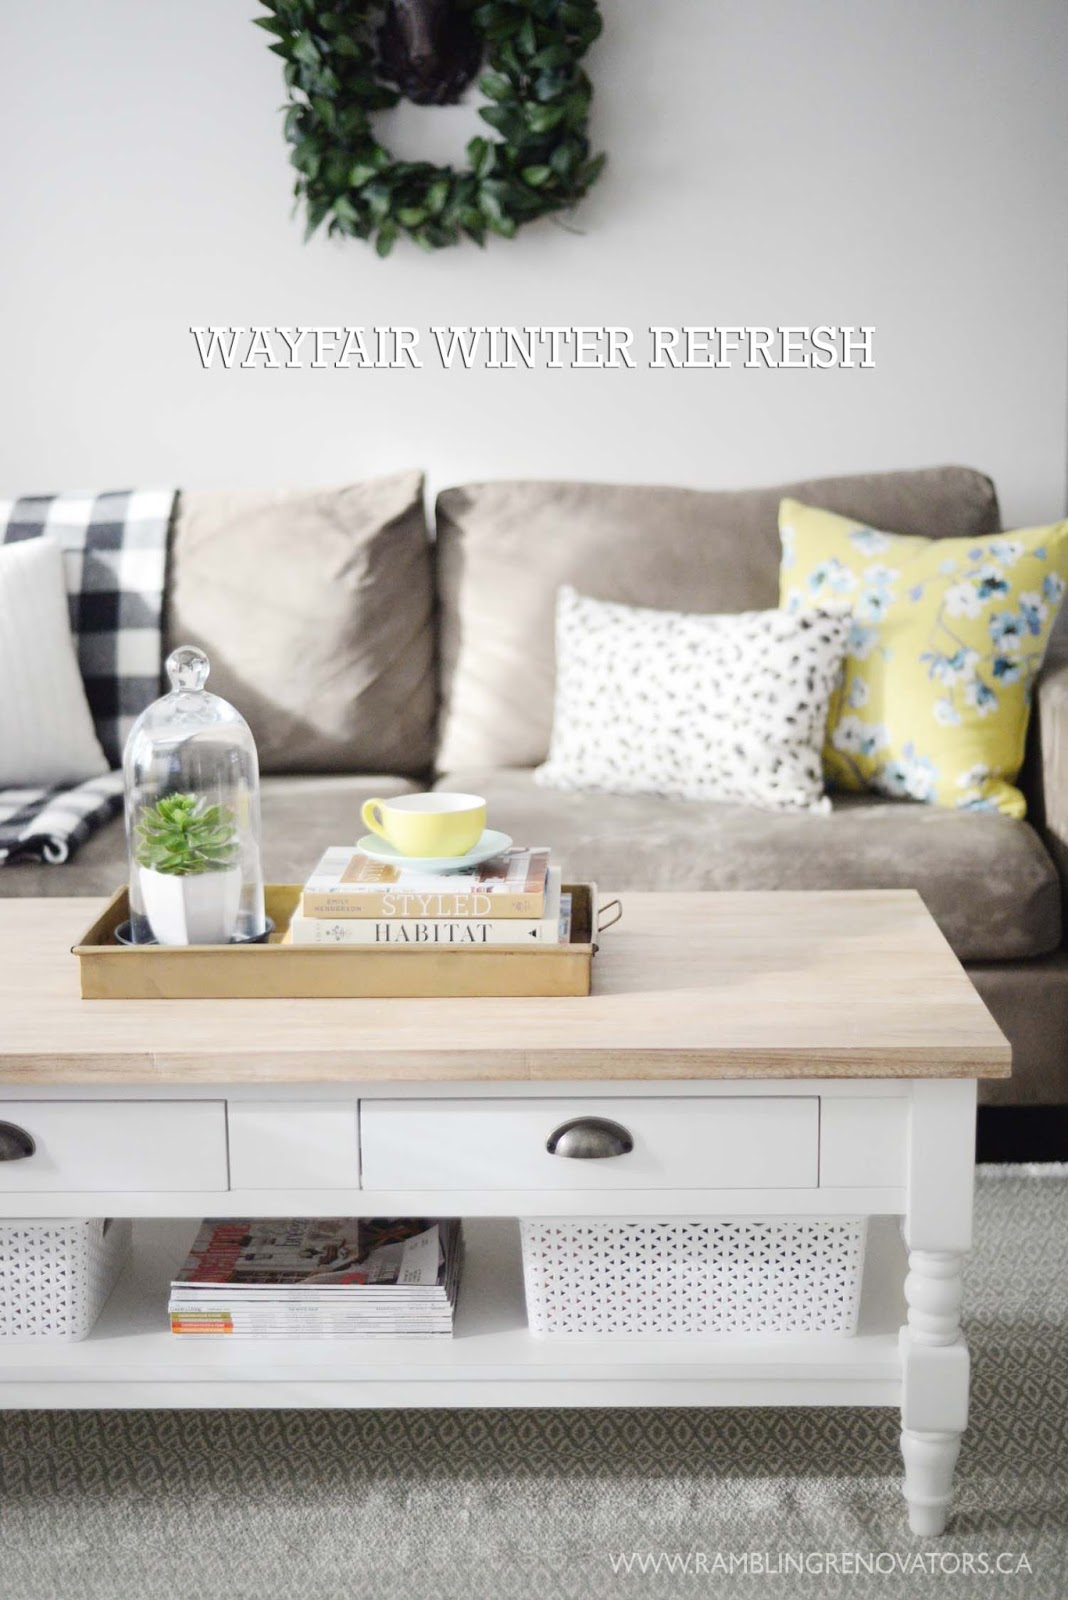 Wayfair Winter Refresh | natural wood and white painted coffee table | yellow teal white | RamblingRenovators.ca